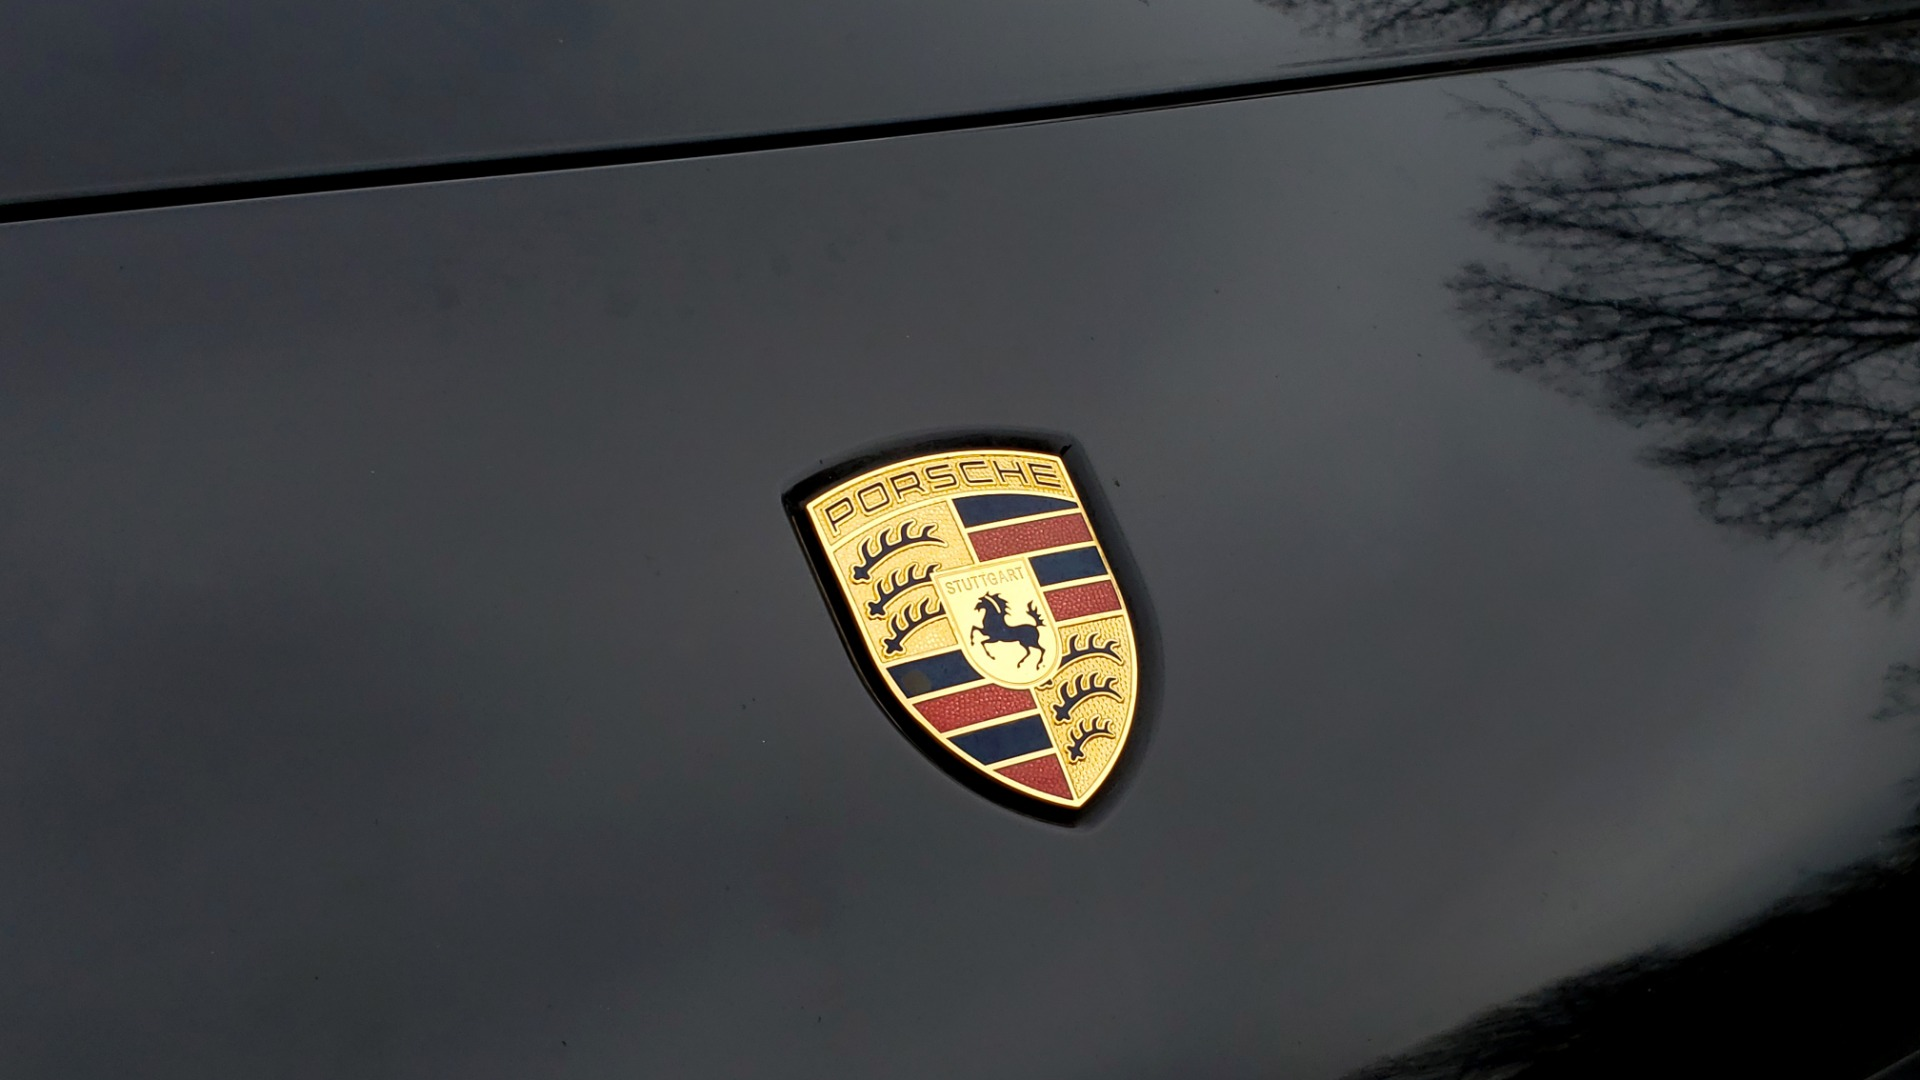 Used 2008 Porsche CAYENNE GTS TIPTRONIC / NAV / SUNROOF / REARVIEW / BOSE for sale Sold at Formula Imports in Charlotte NC 28227 17